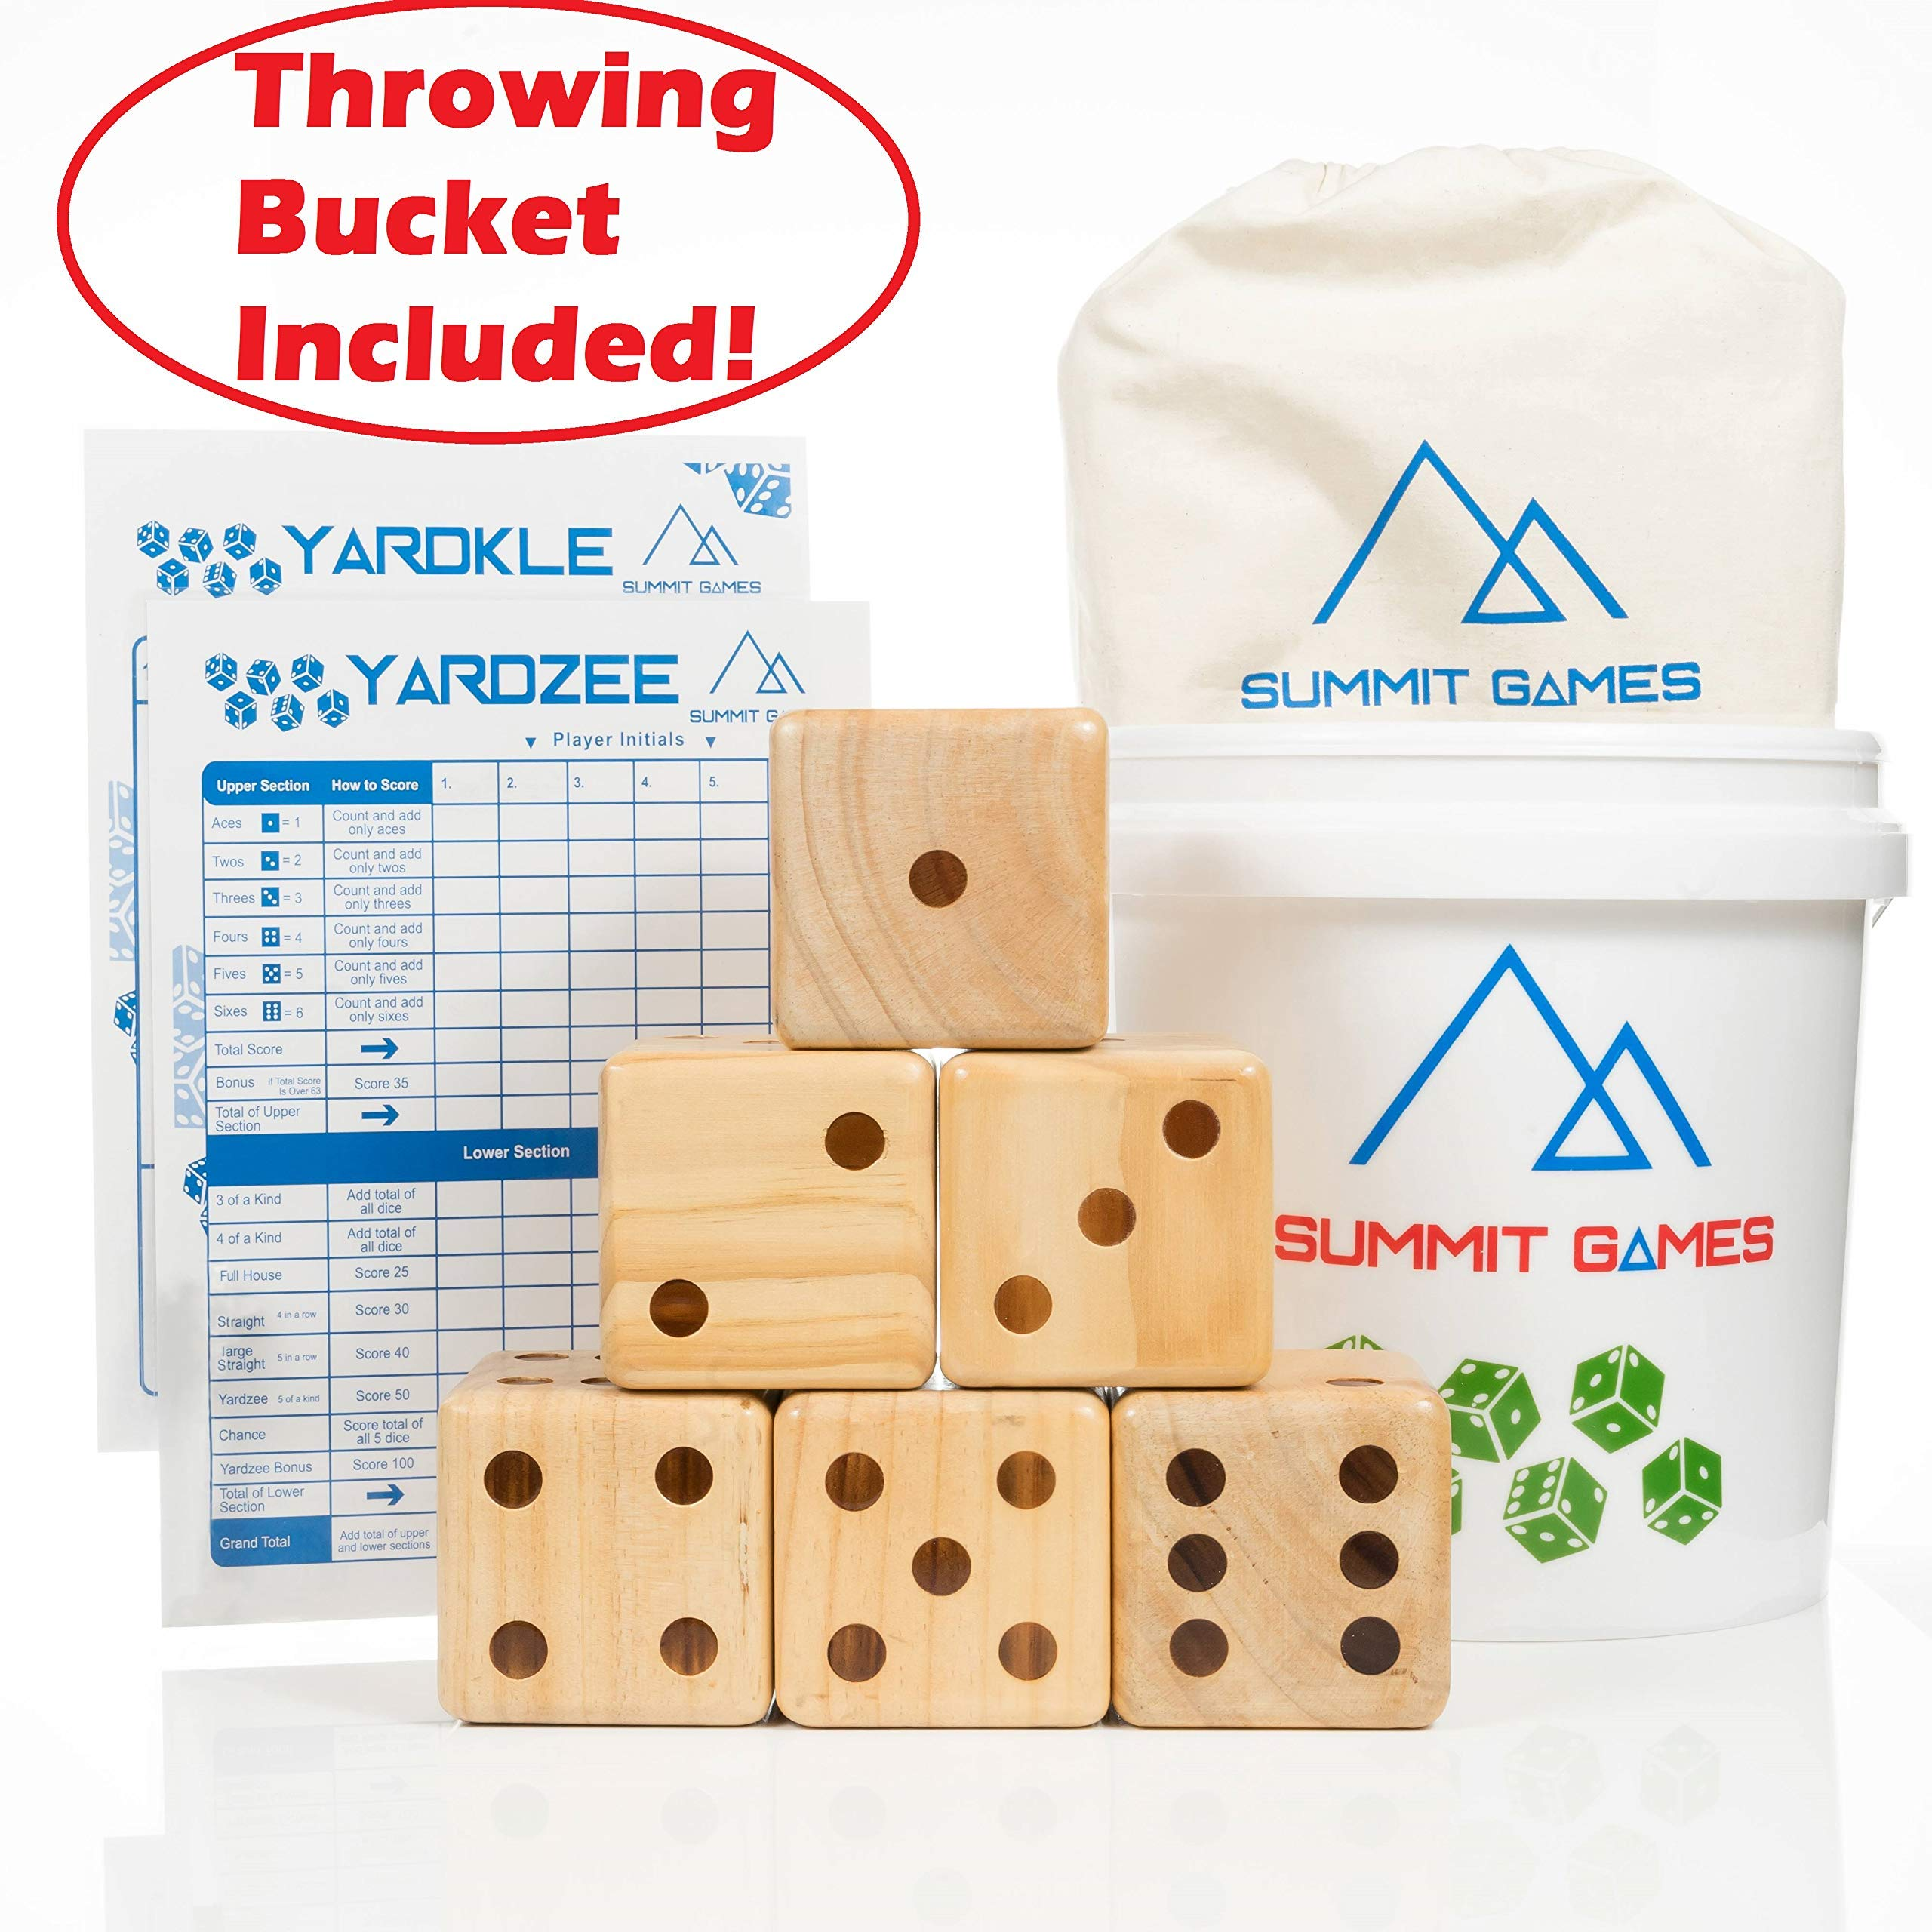 Summit Games Giant Yard Dice Set - Includes 6 Wooden Dice (3.5''), Throwing Bucket, 2 Scorecards and Cloth Carrying Bag - Fun Indoor and Outdoor Family Games